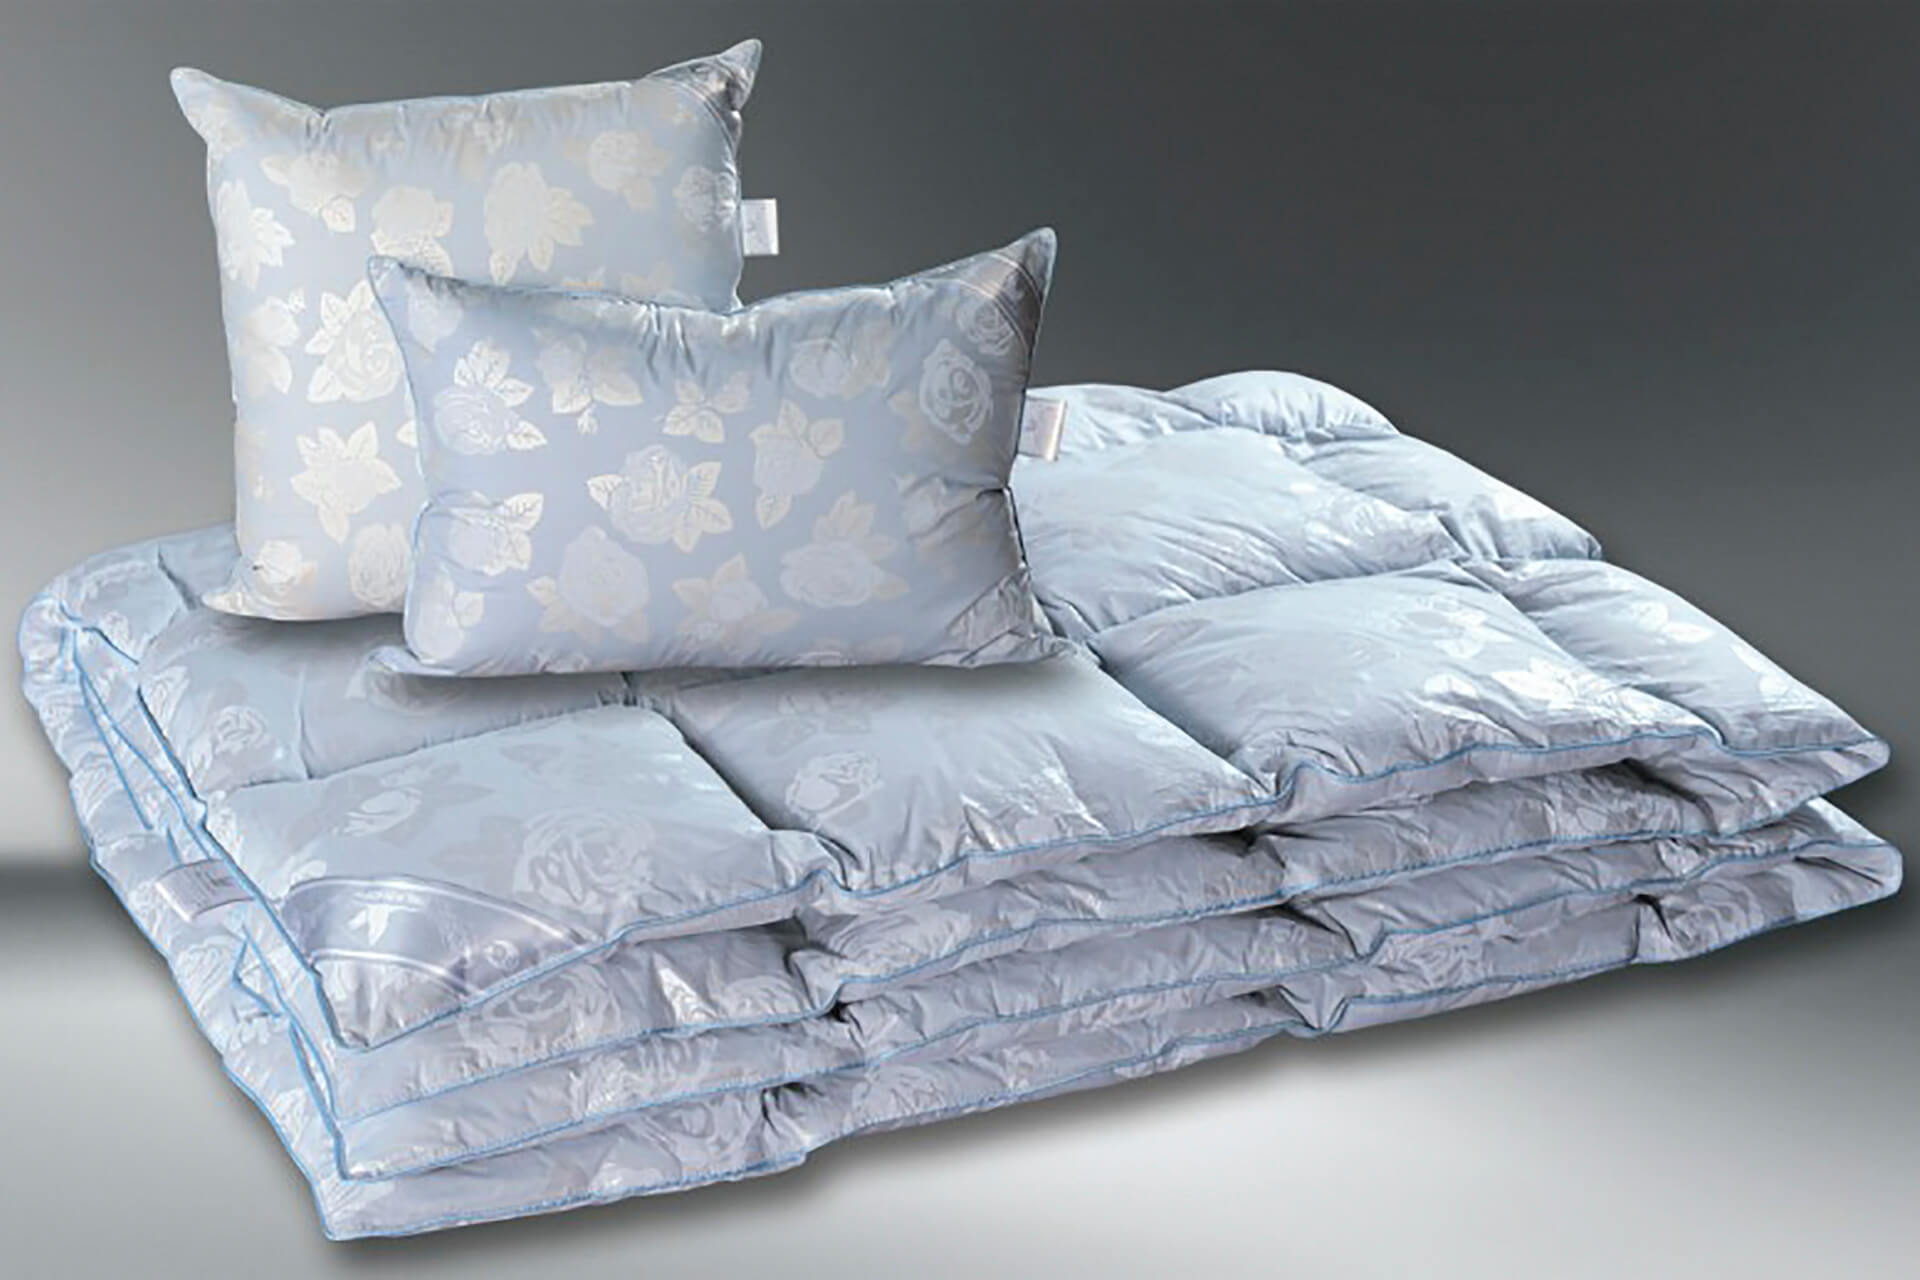 silver metallic bedding fabric